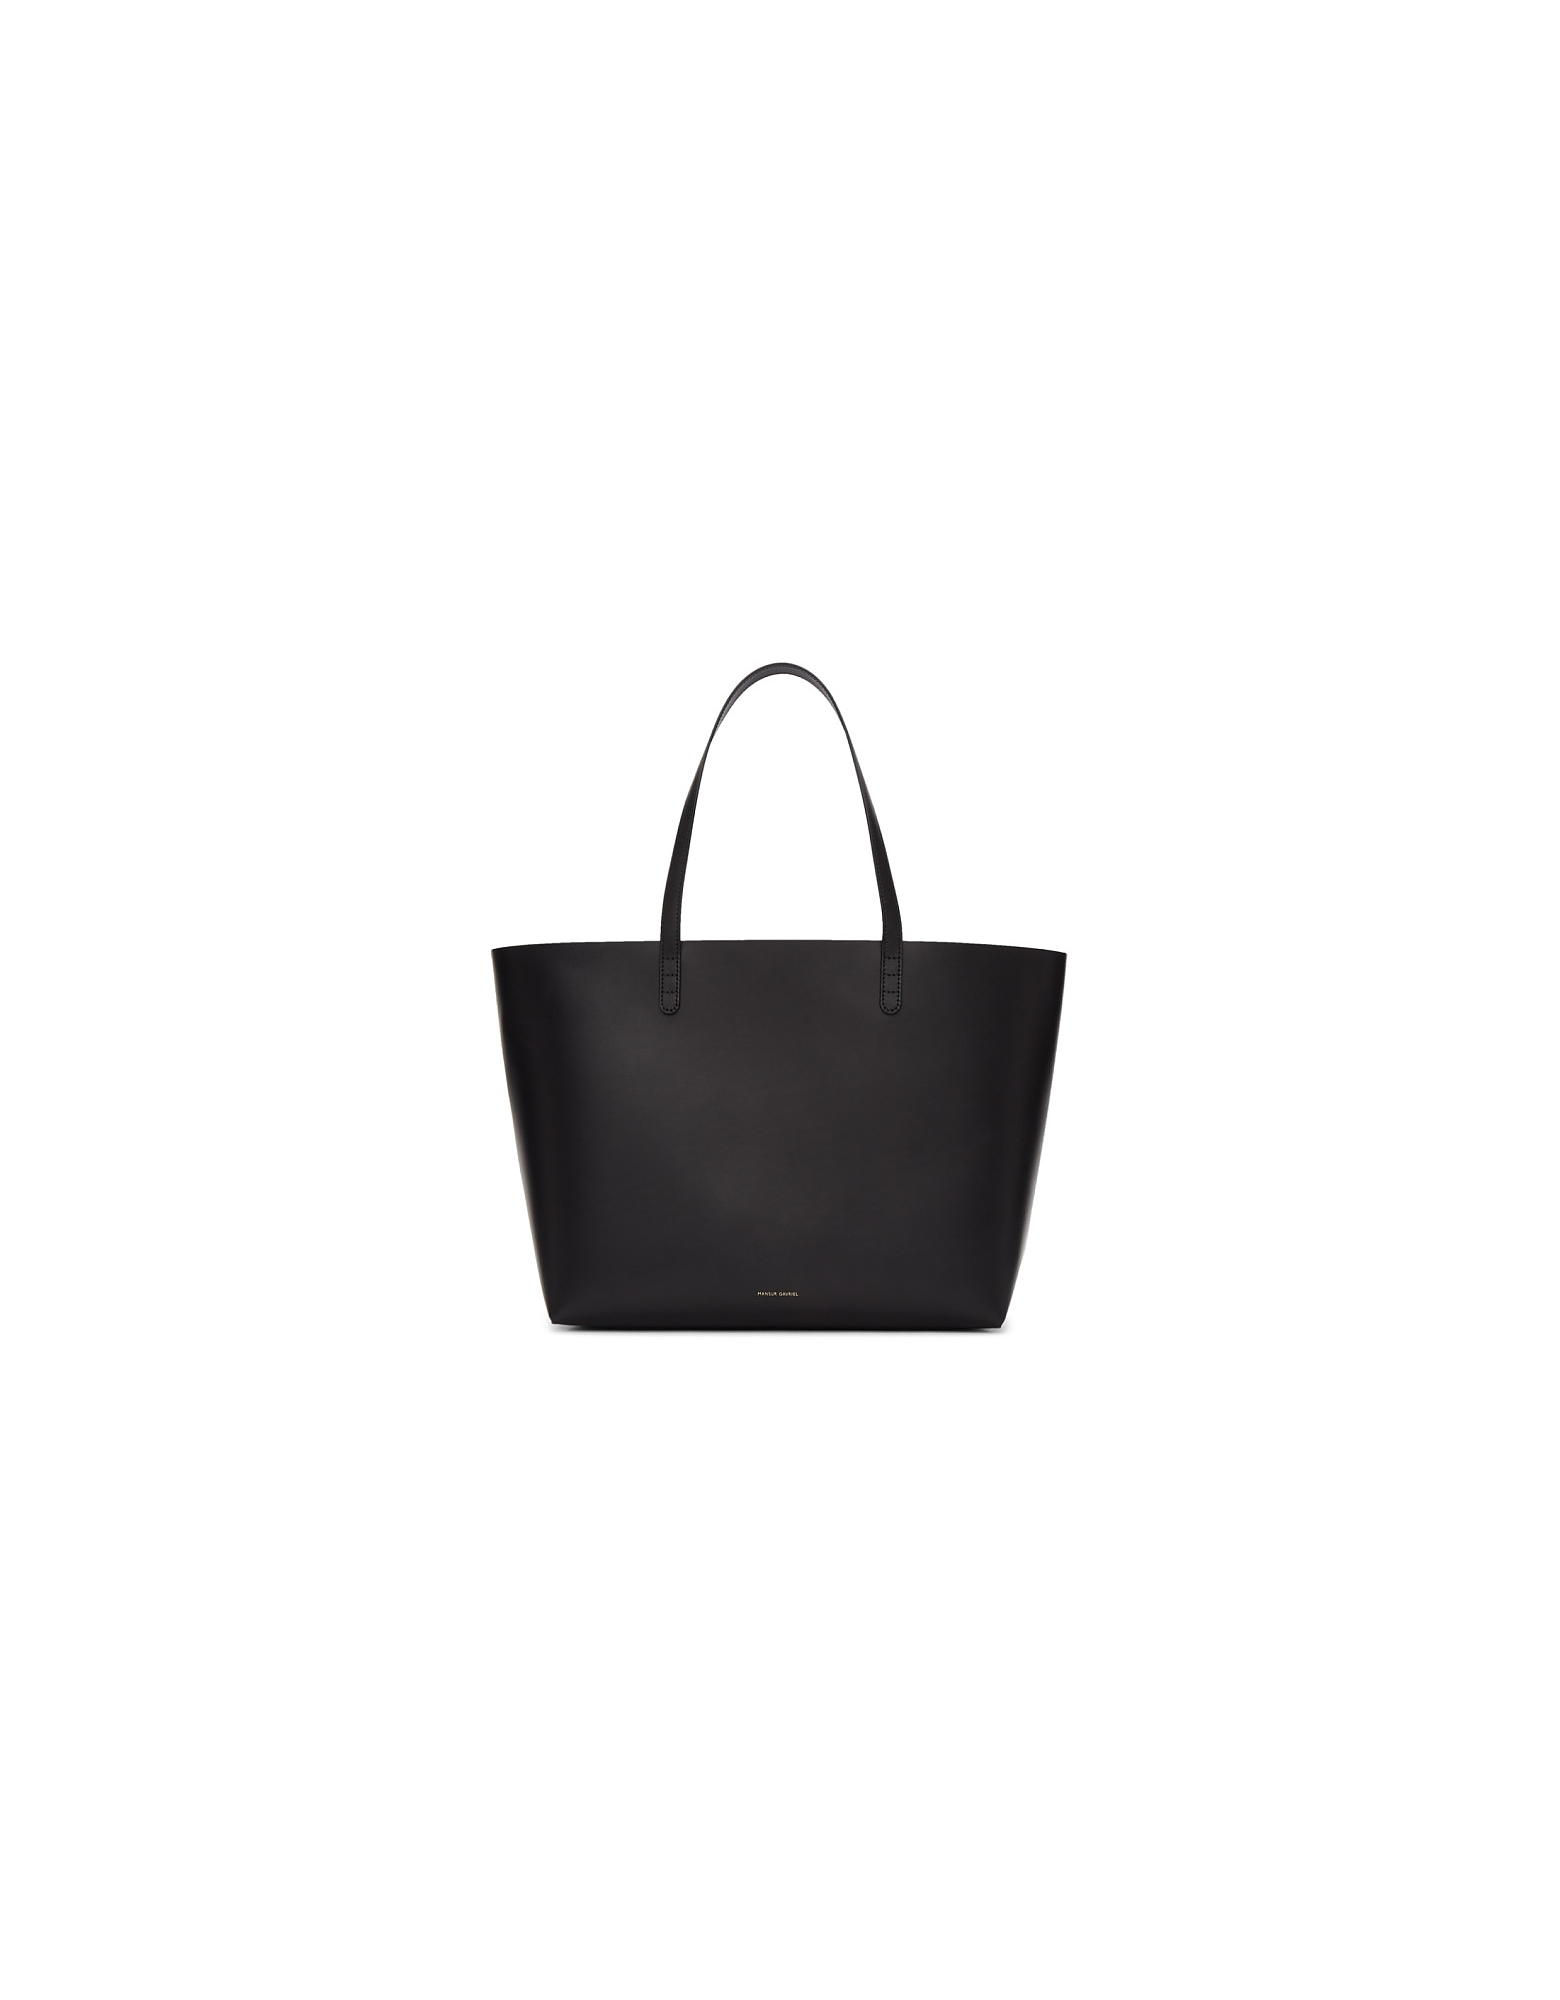 Mansur Gavriel Designer Handbags, Black and Pink Large Tote